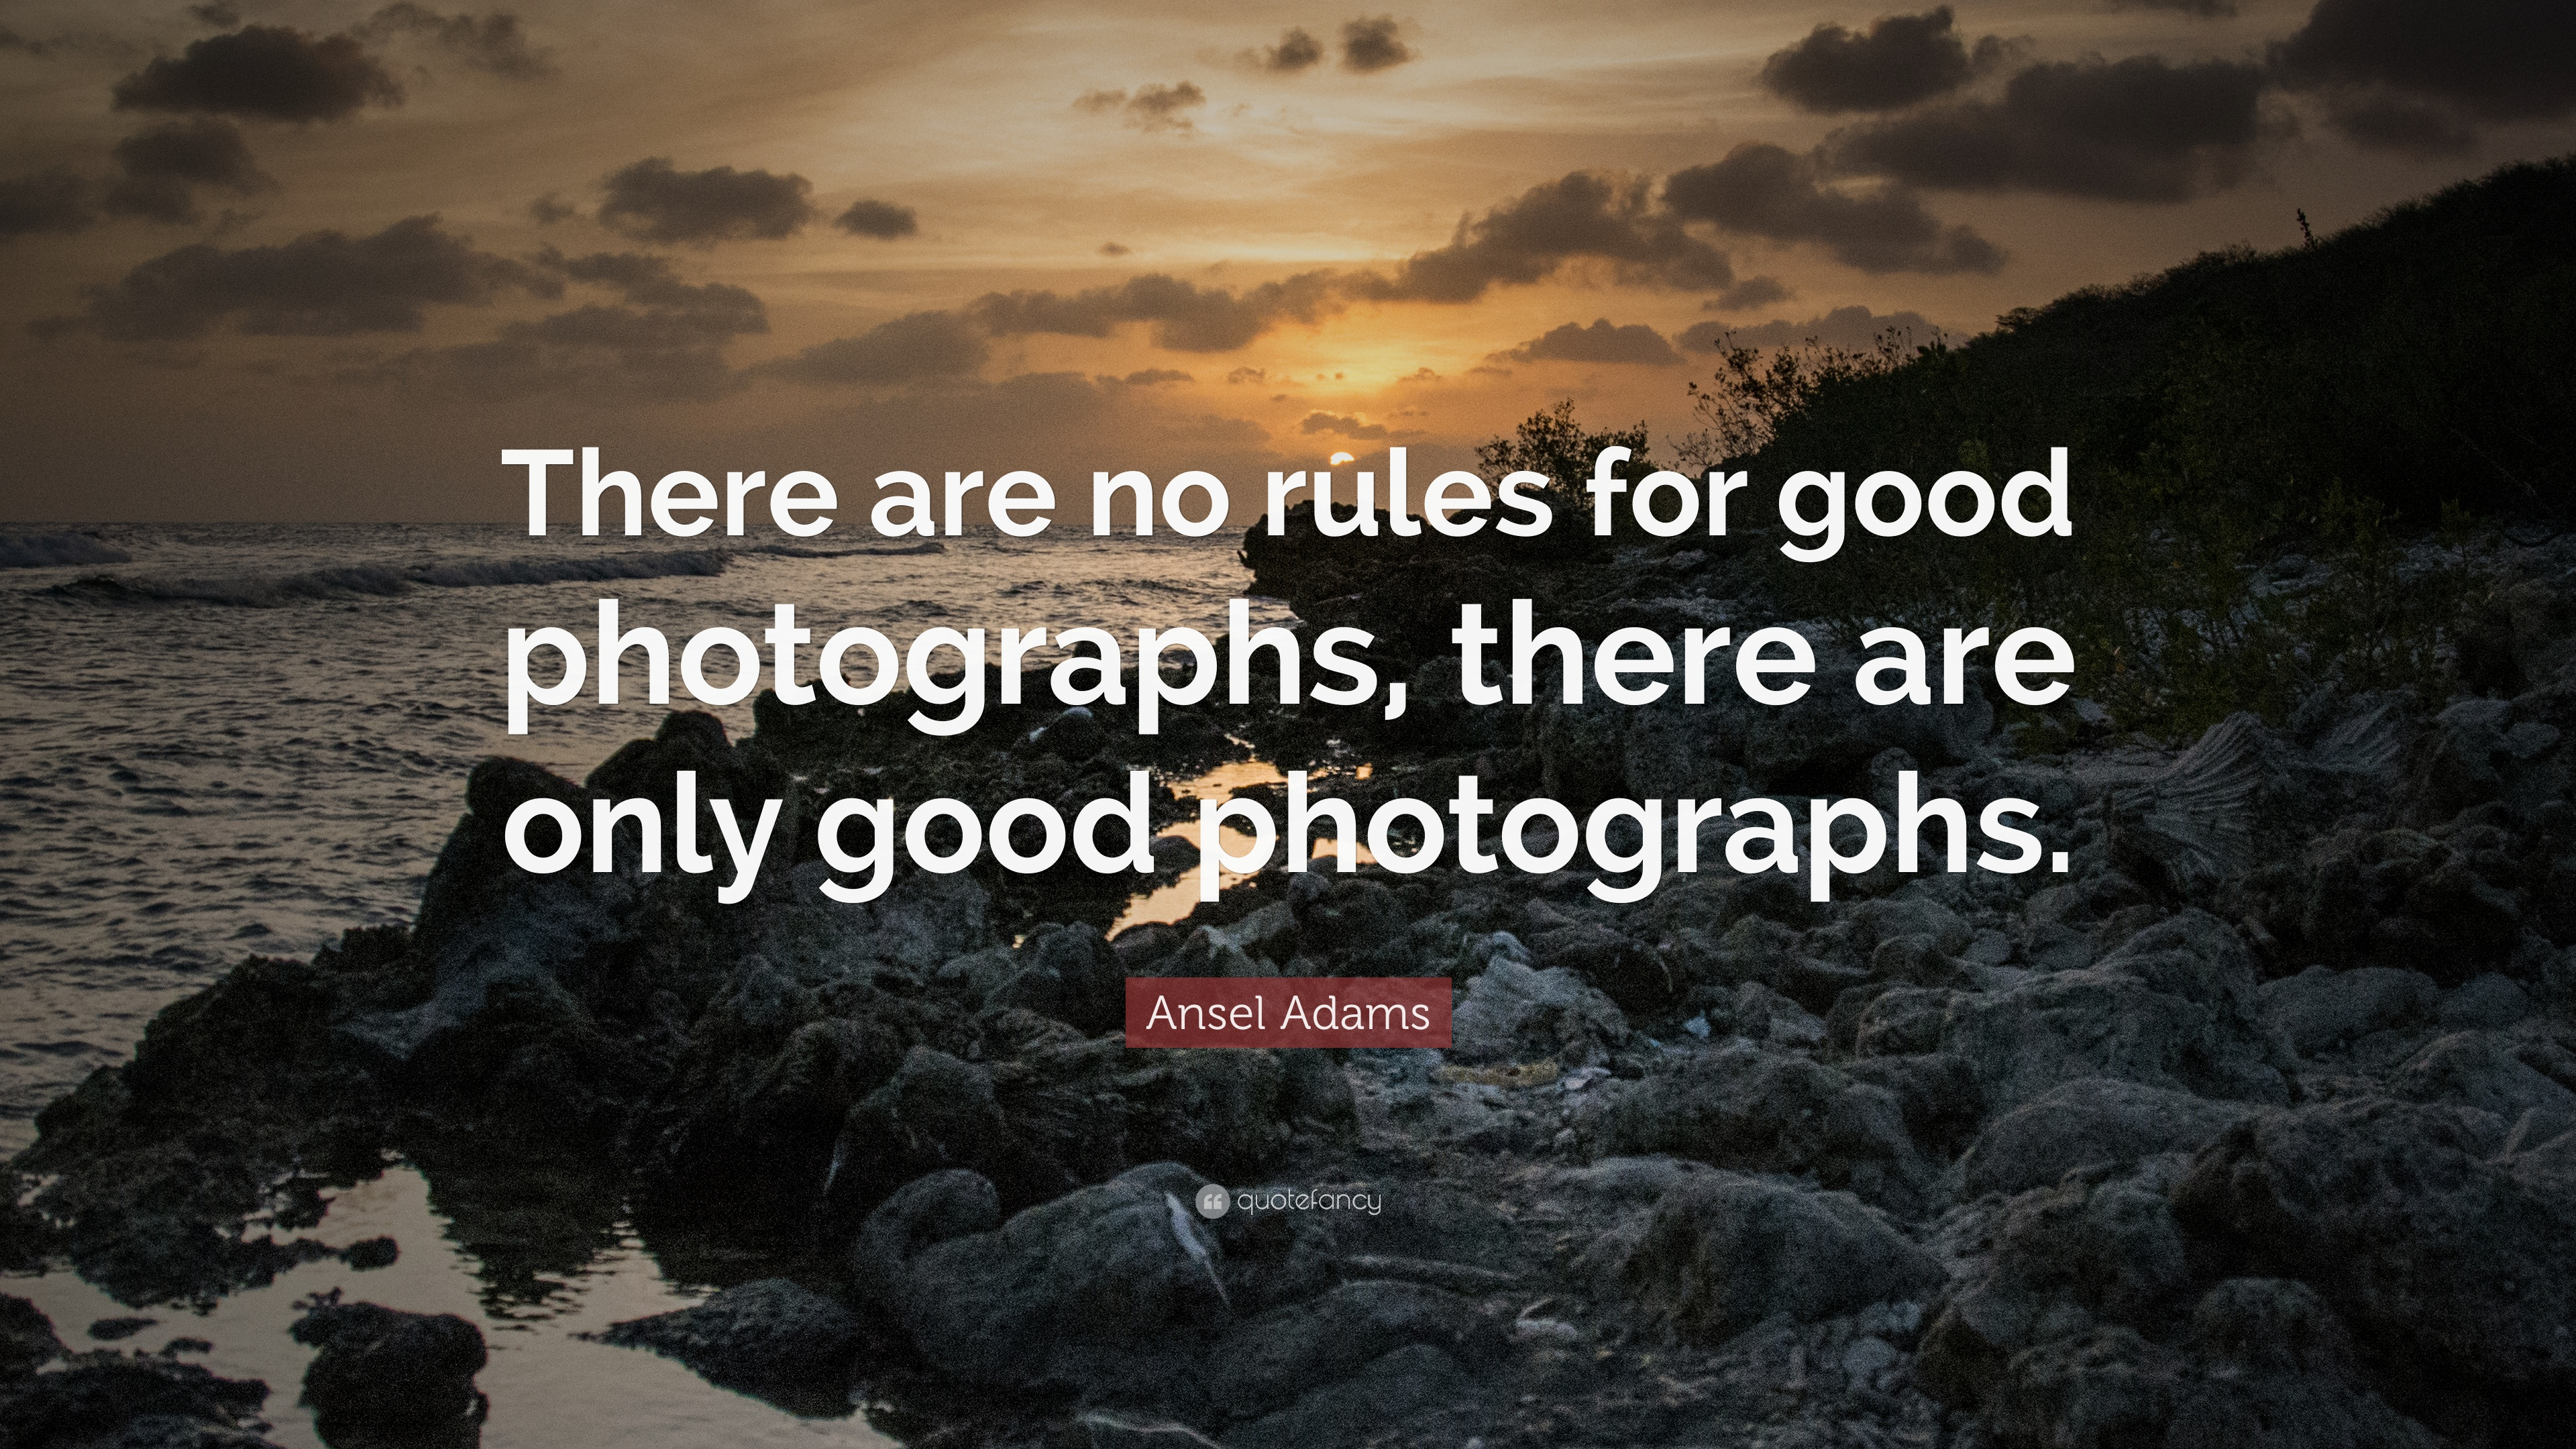 Photography Quotes  22 wallpapers    Quotefancy Photography Quotes     There are no rules for good photographs  there are  only good